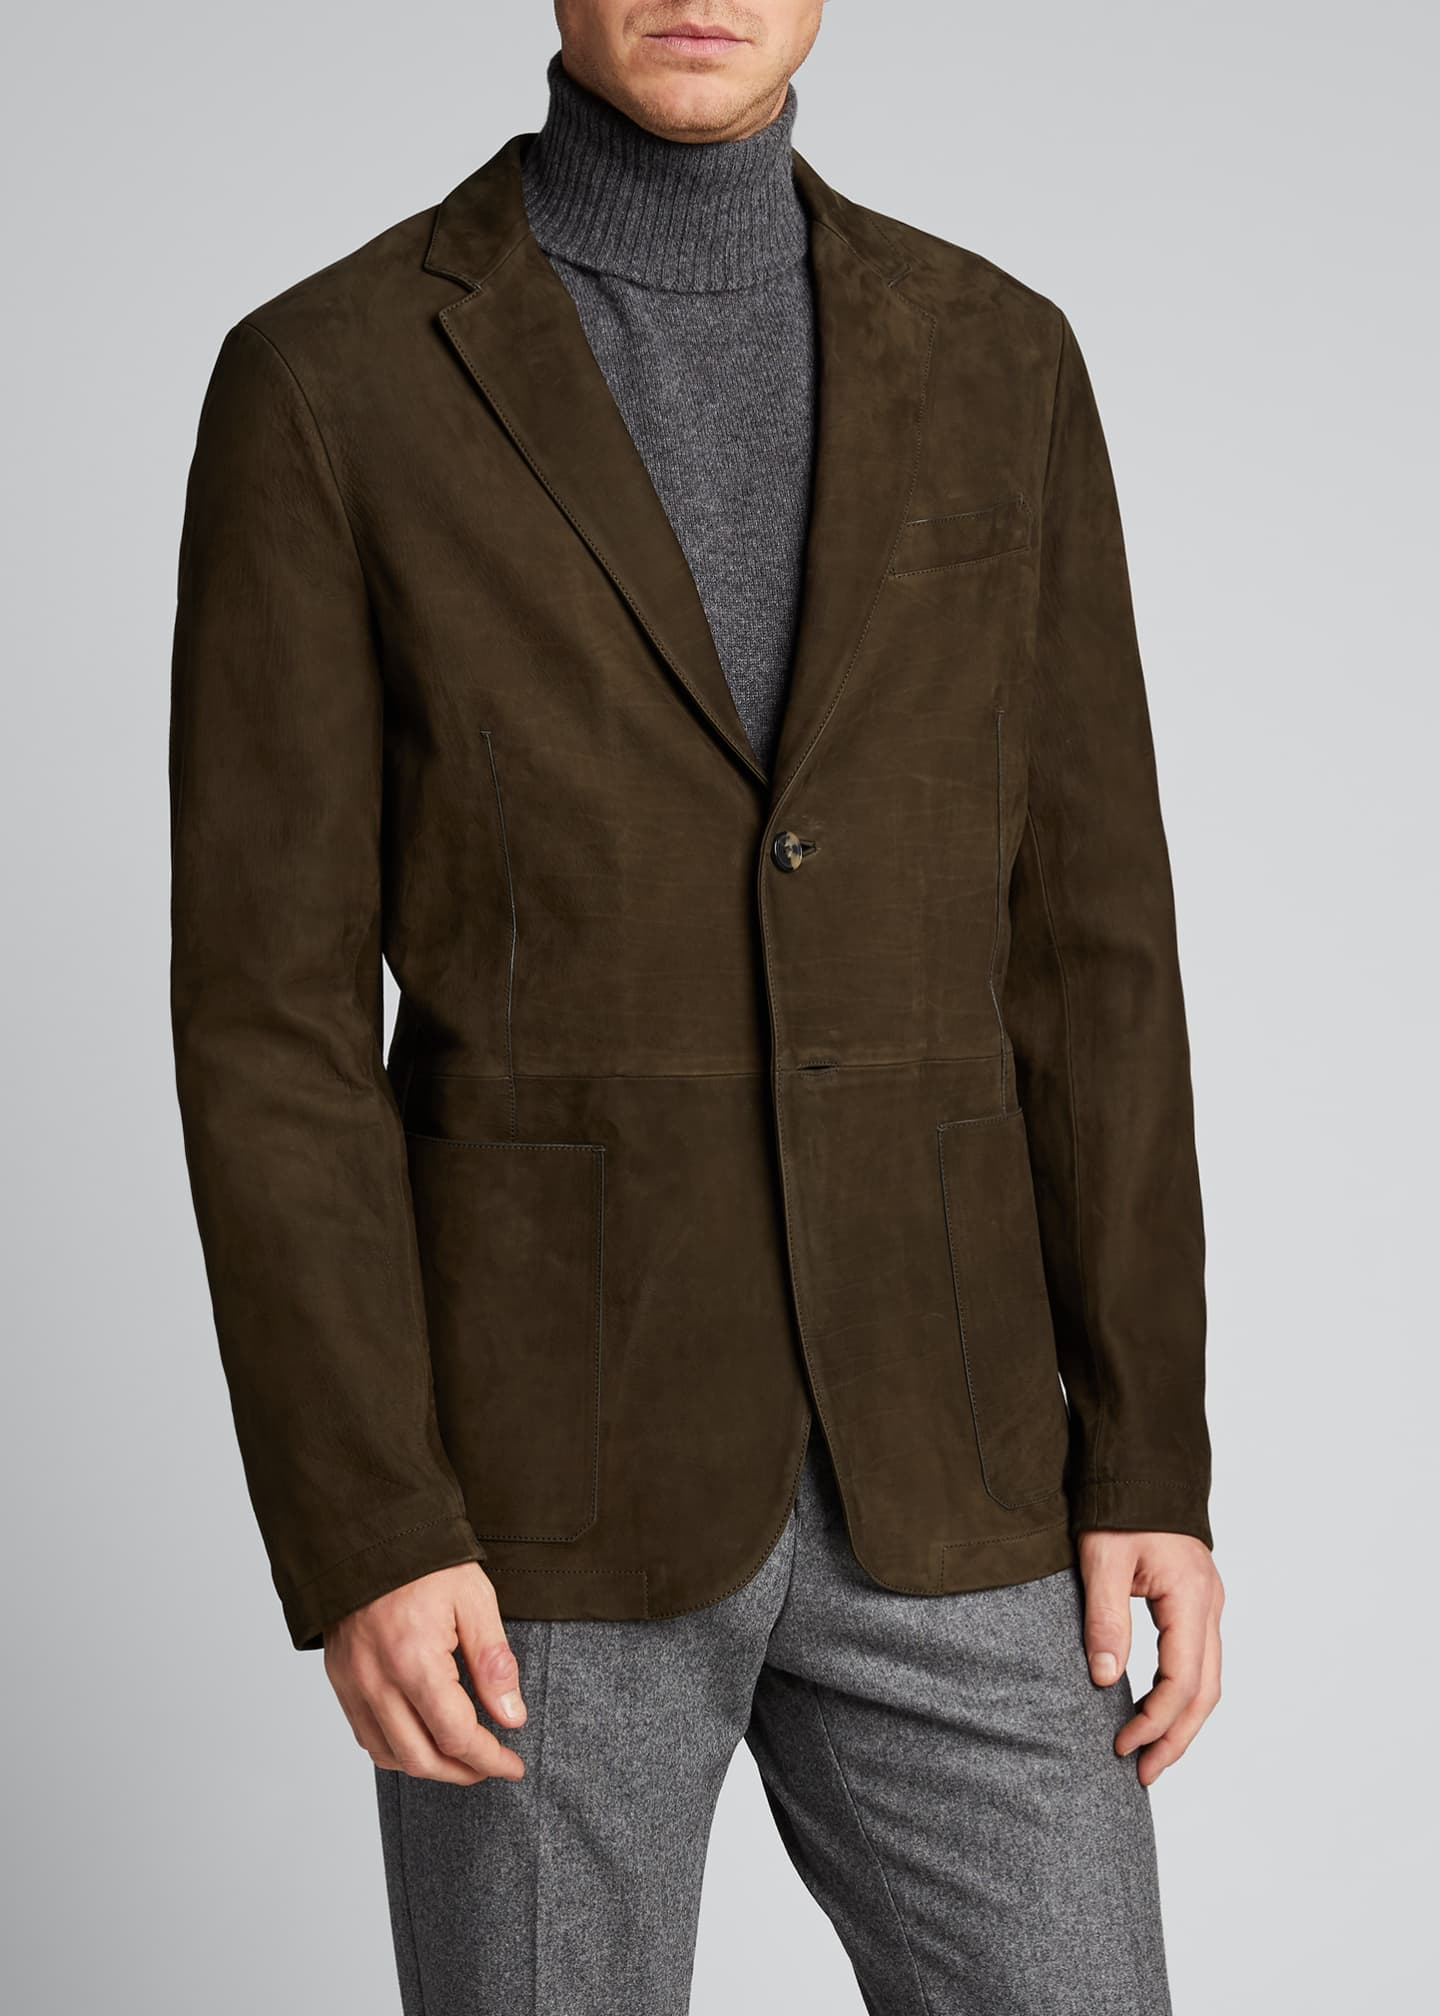 Image 3 of 5: Men's Two-Button Leather Jacket